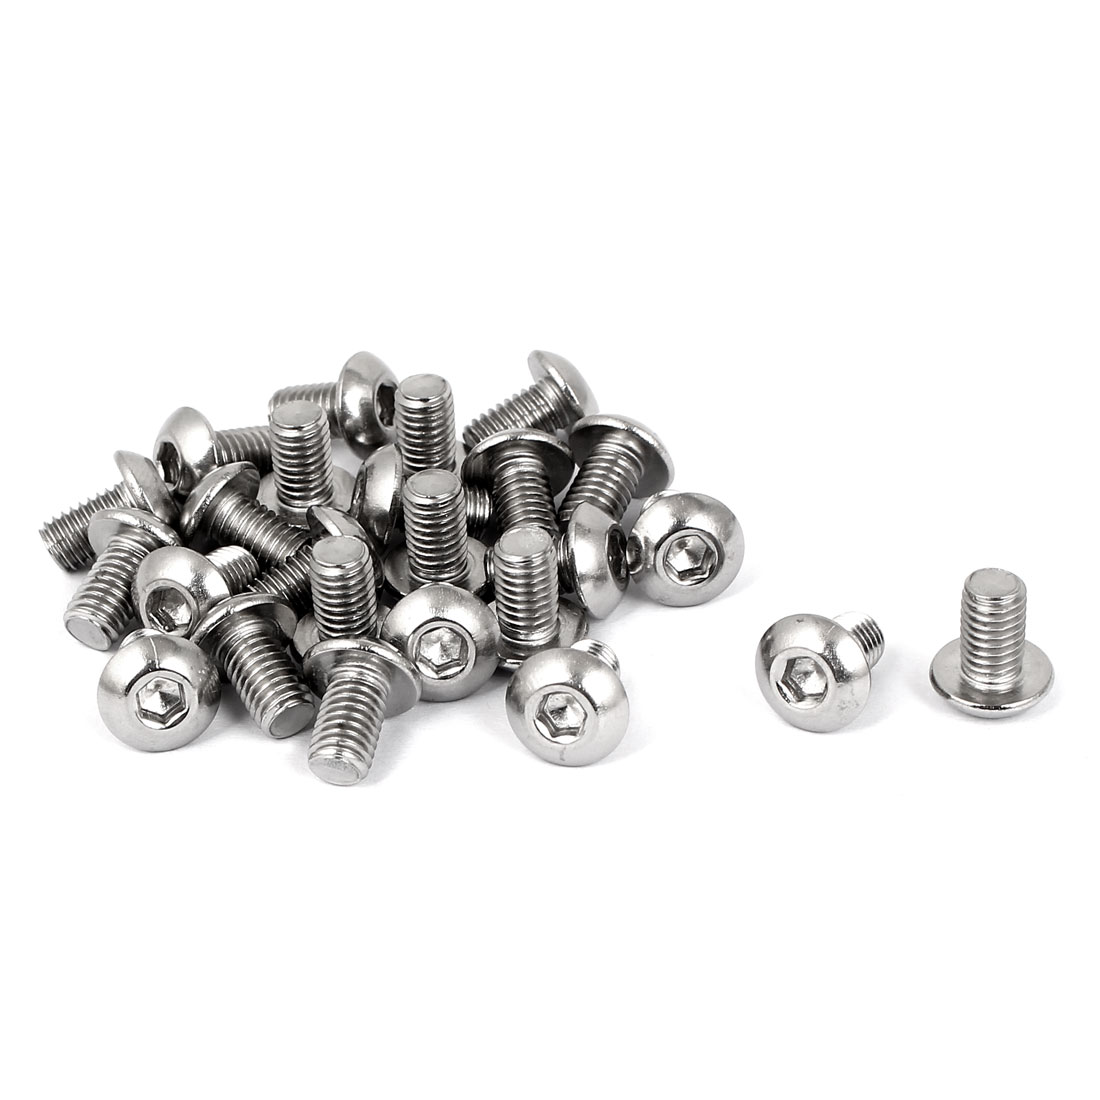 M5 x 8mm Full Thread Button Head Socket Cap Screw Silver Tone 25 Pcs